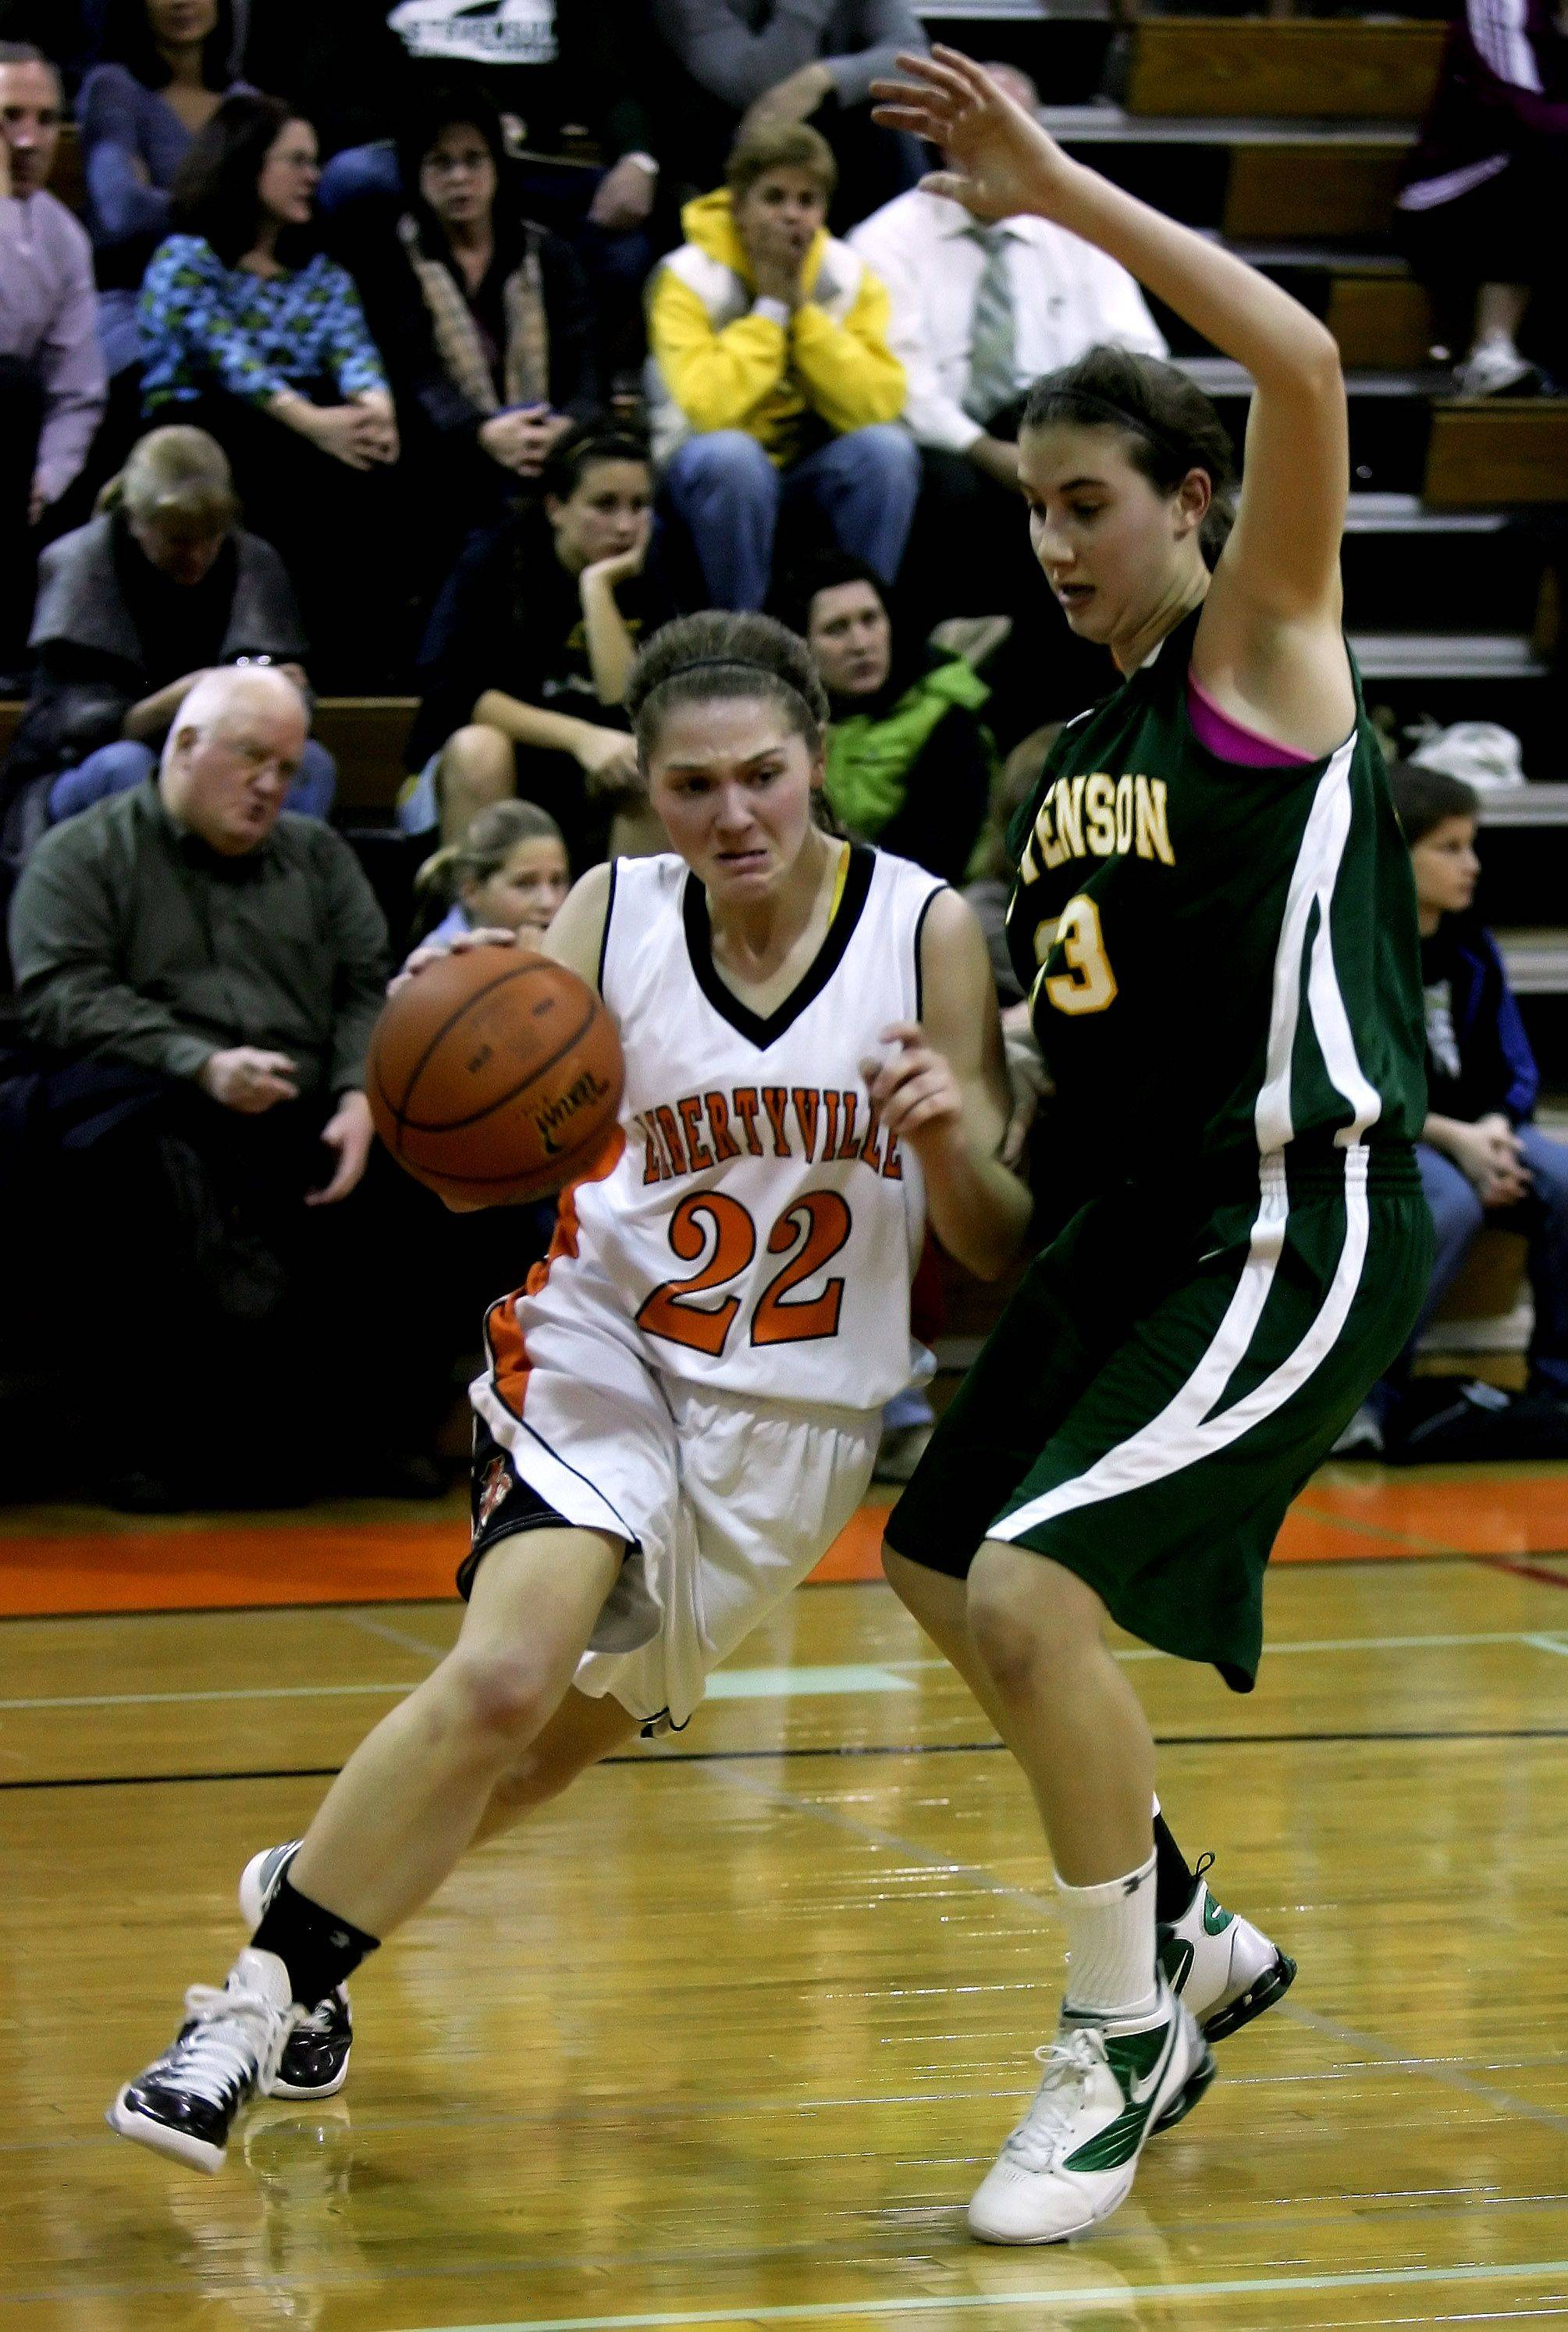 Libertyville player Olivia Wilcox drives by Stevenson player Michelle O'Brien.